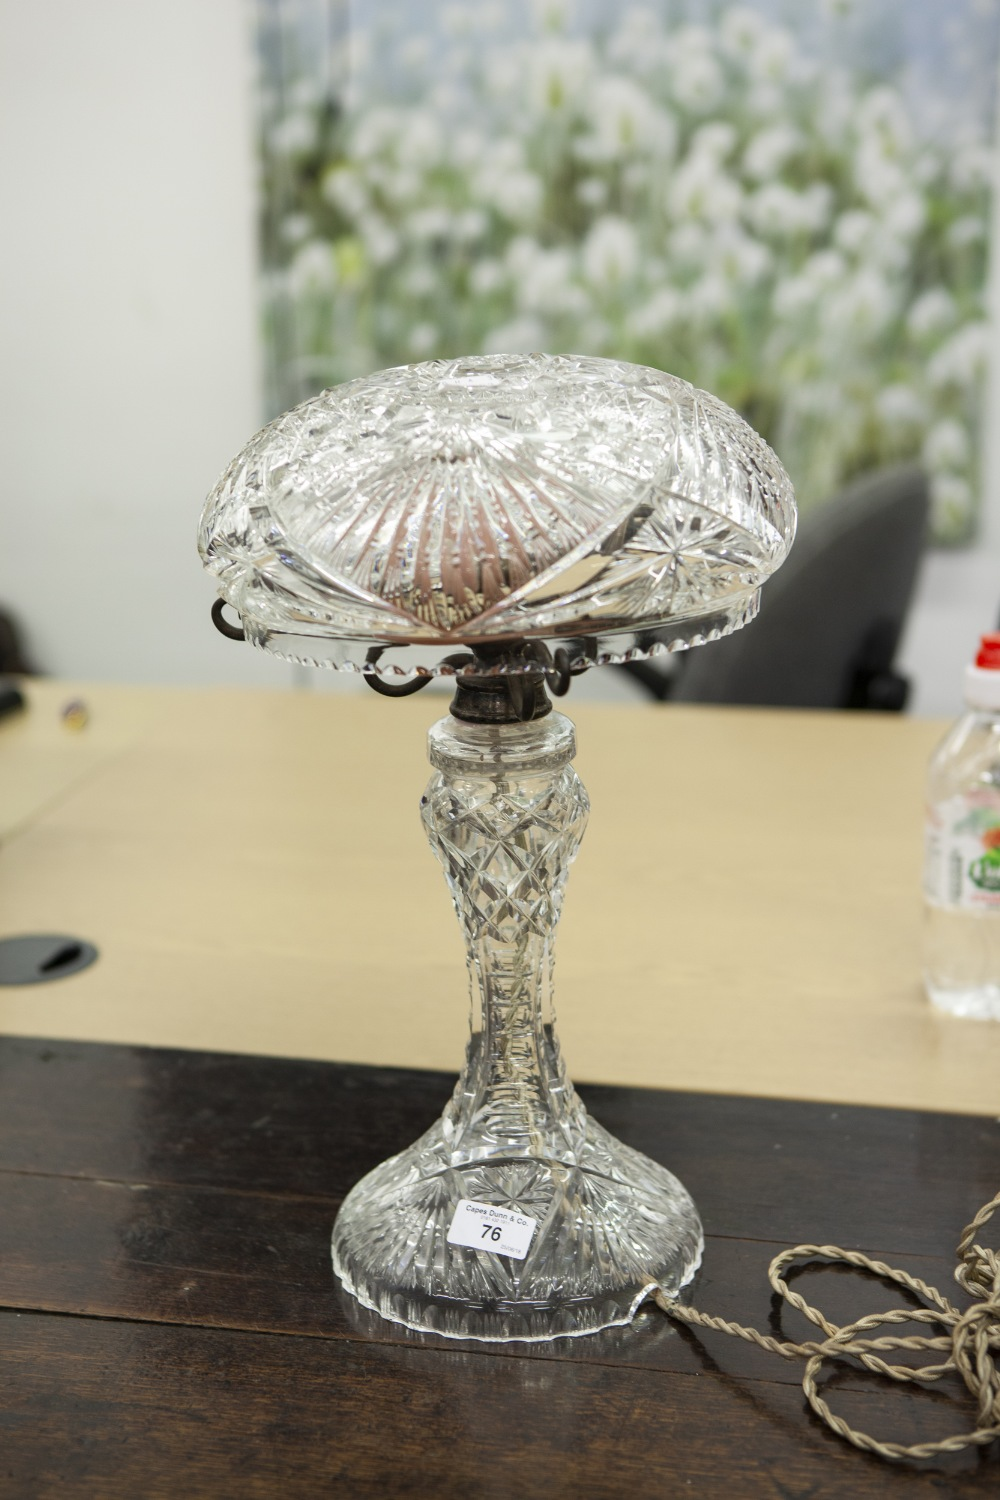 Lot 76 - A CUT GLASS CRYSTAL TABLE LAMP, WITH MUSHROOM SHAPED SHADE ON SPREAD BASE